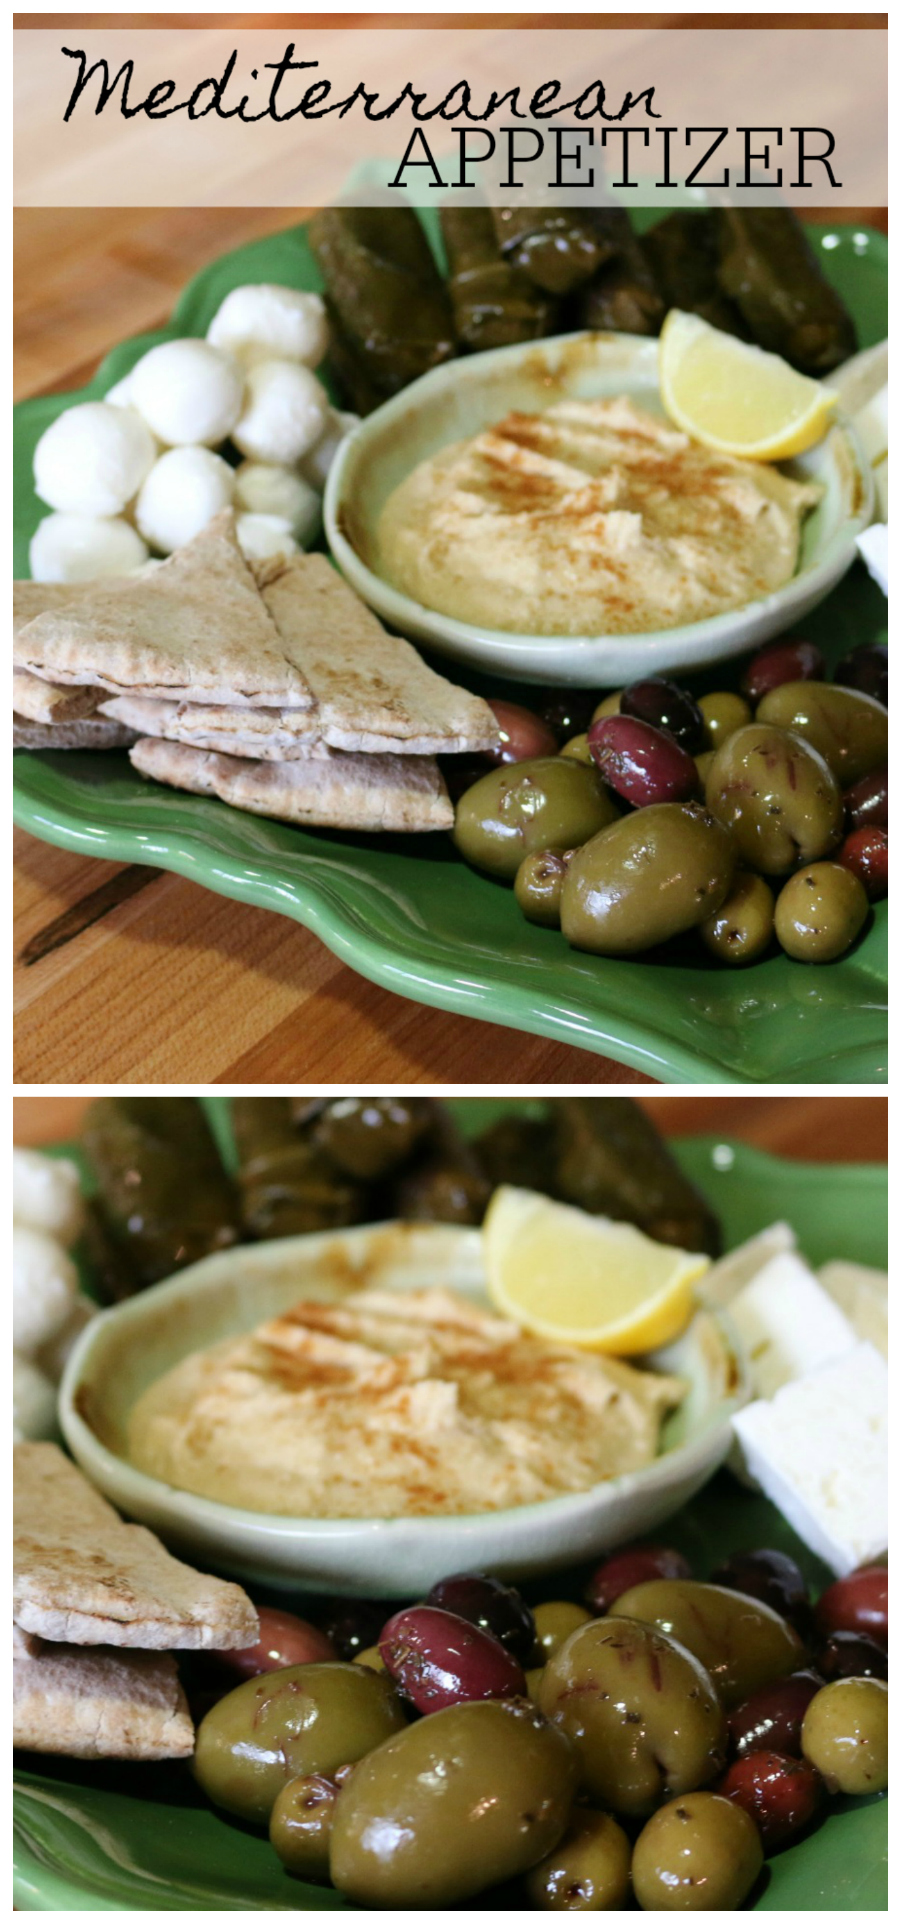 A Simple Mediterranean Appetizer Recipe CeceliasGoodStuff.com | Good Food for Good People